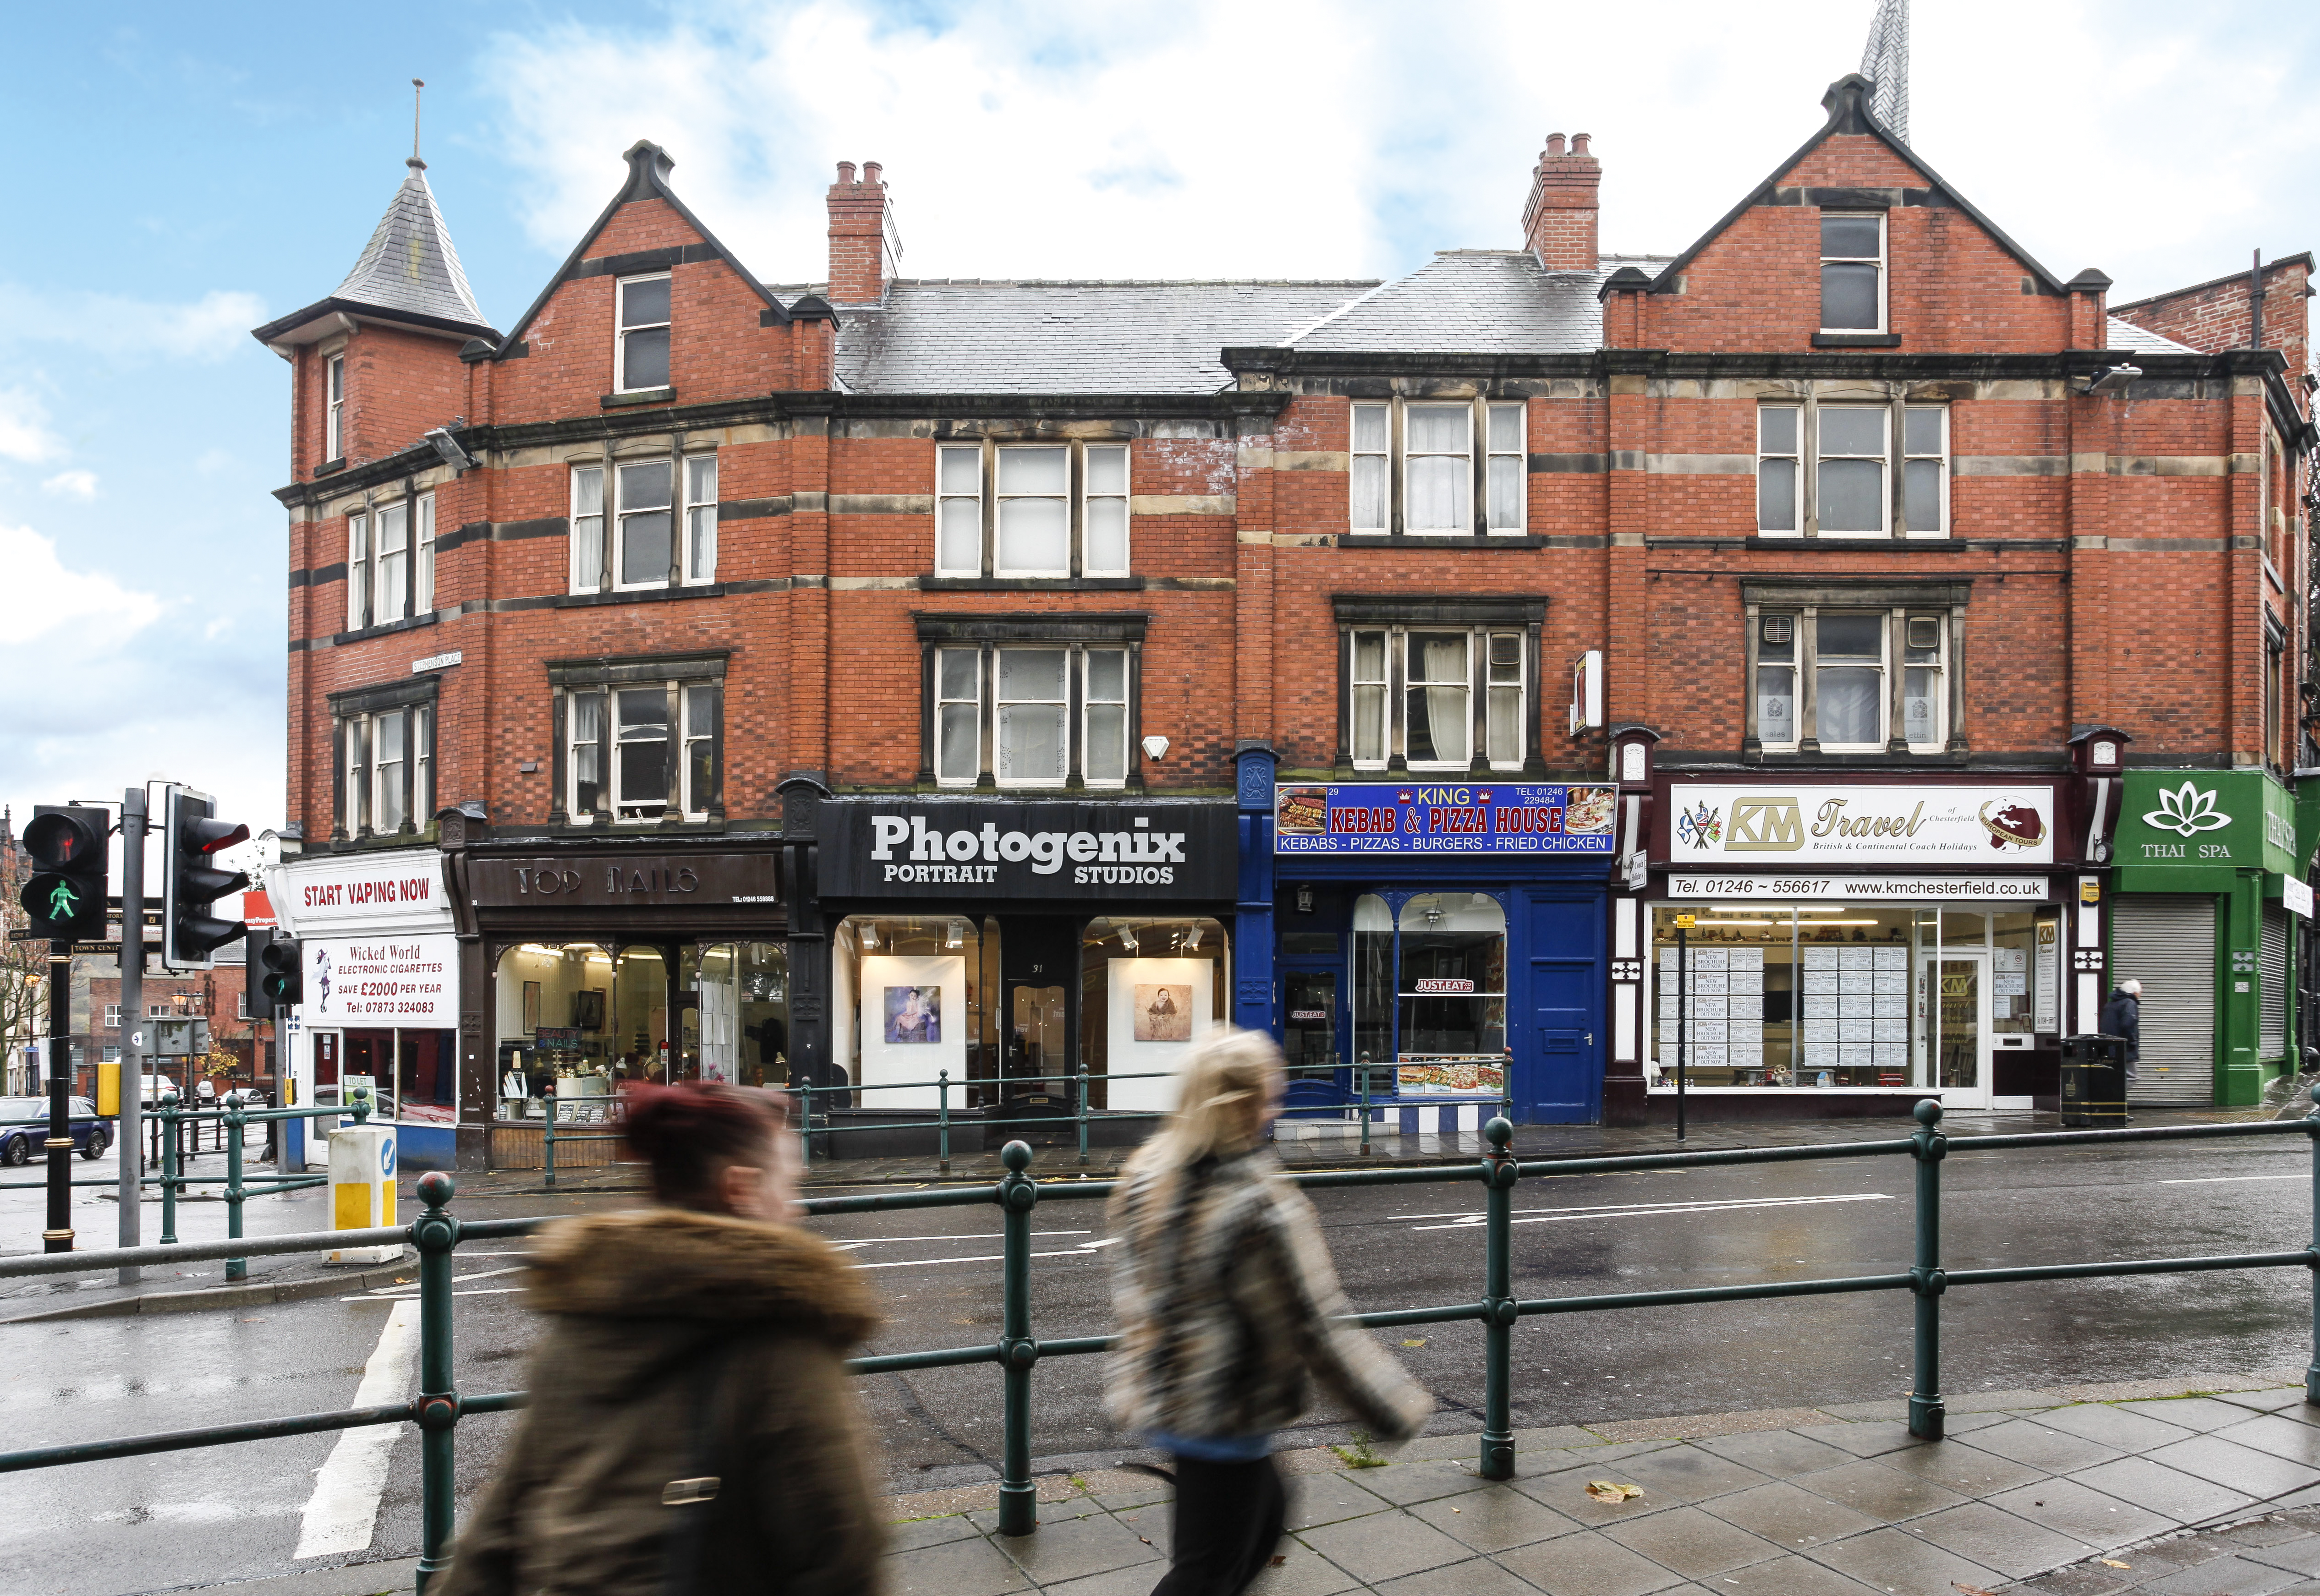 25 35 Stephenson Place Chesterfield Derbyshire S40 1xl